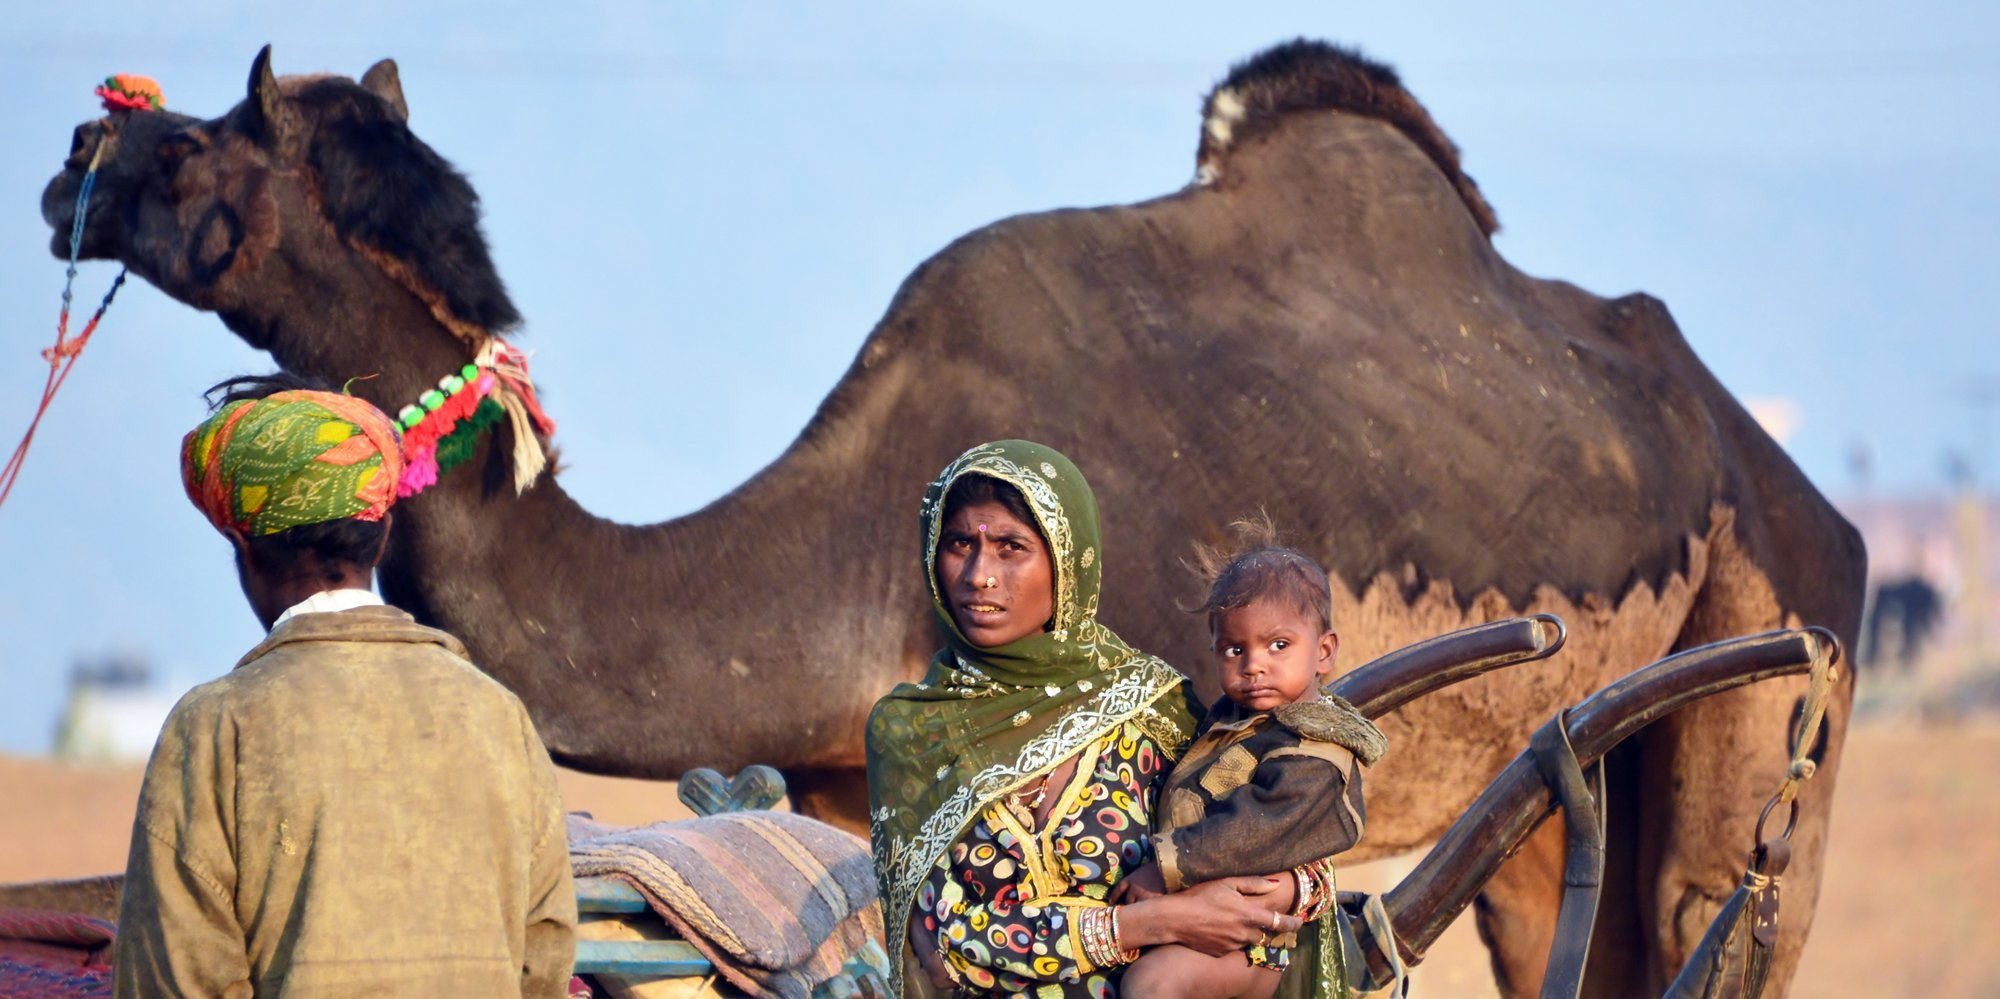 Curiosity, Pushkar Fair